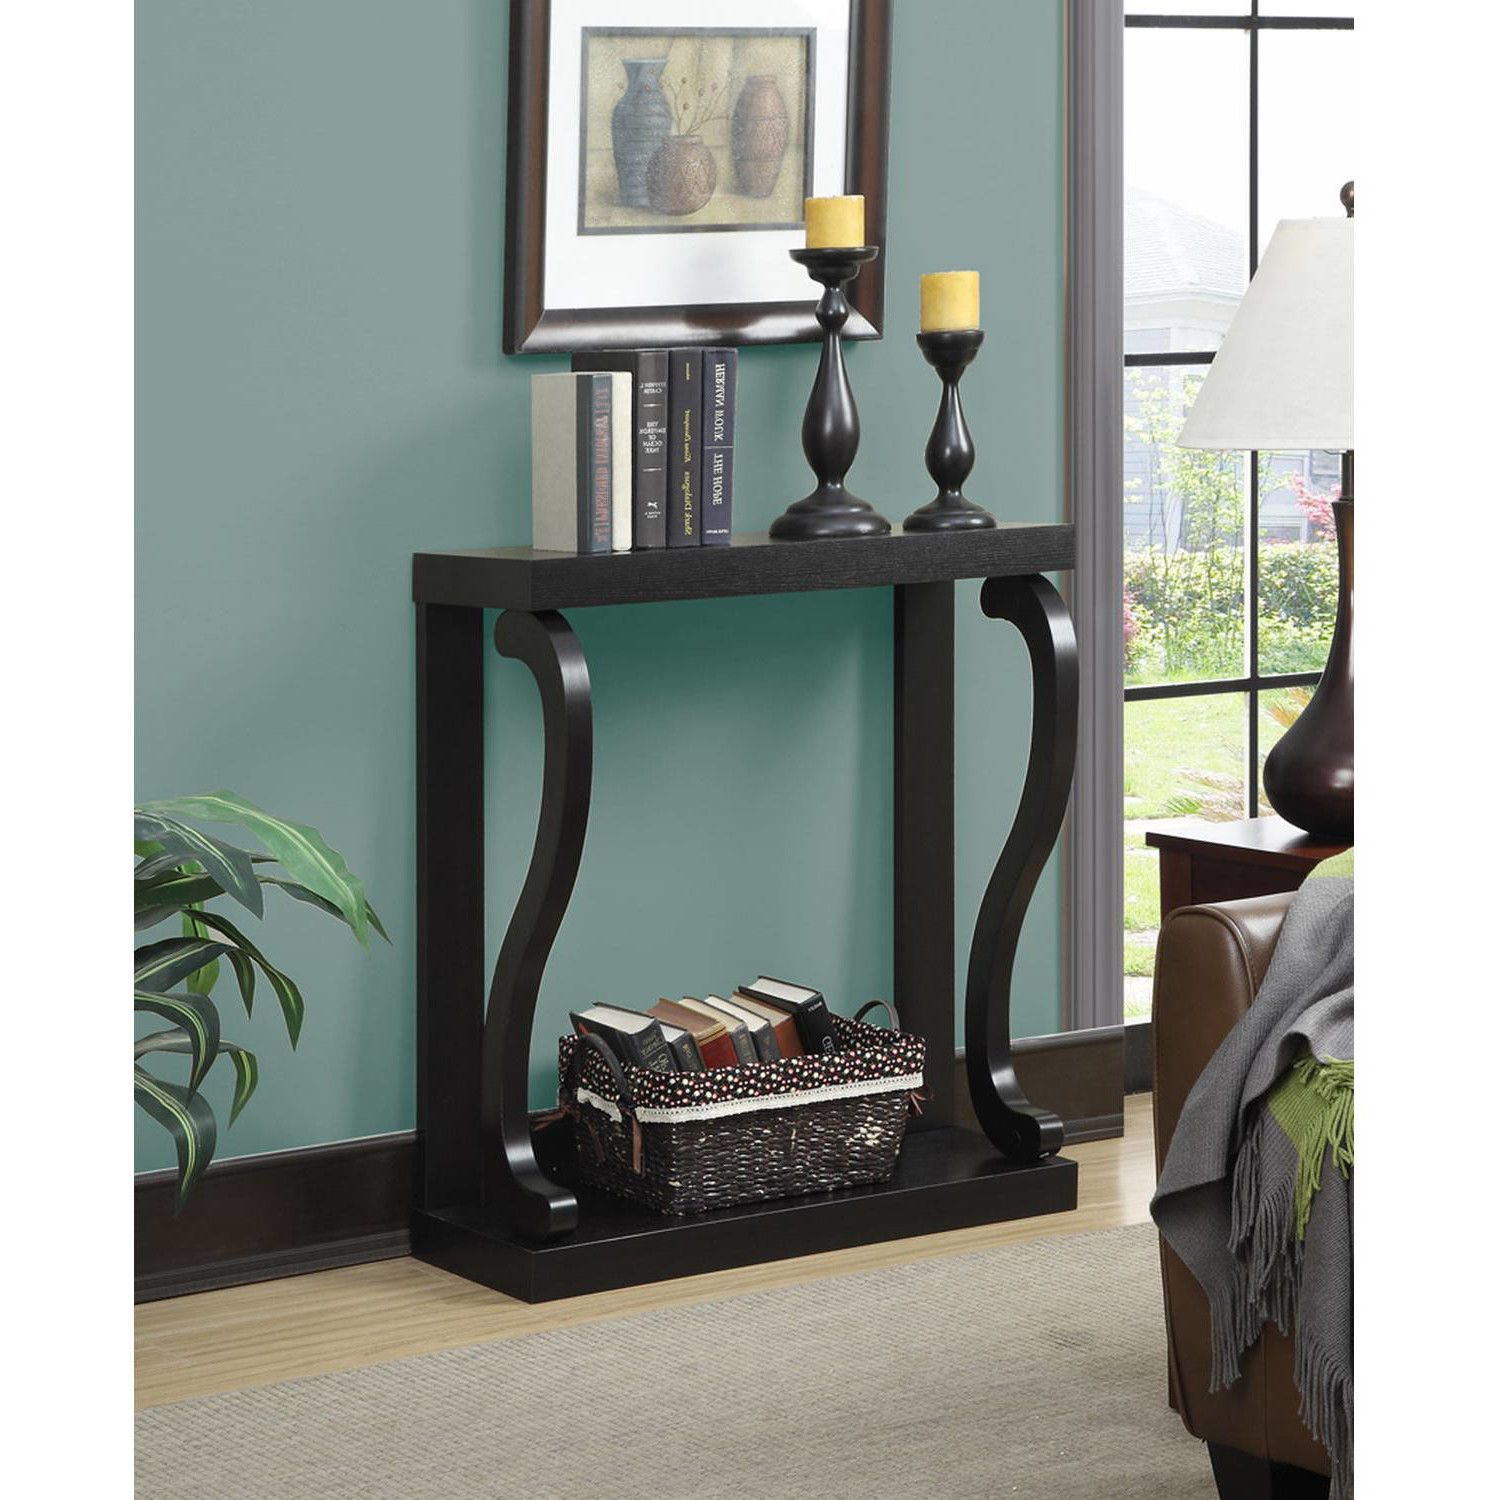 Modern Wood Console Table Accent Entryway Sofa Hall Entry Espresso